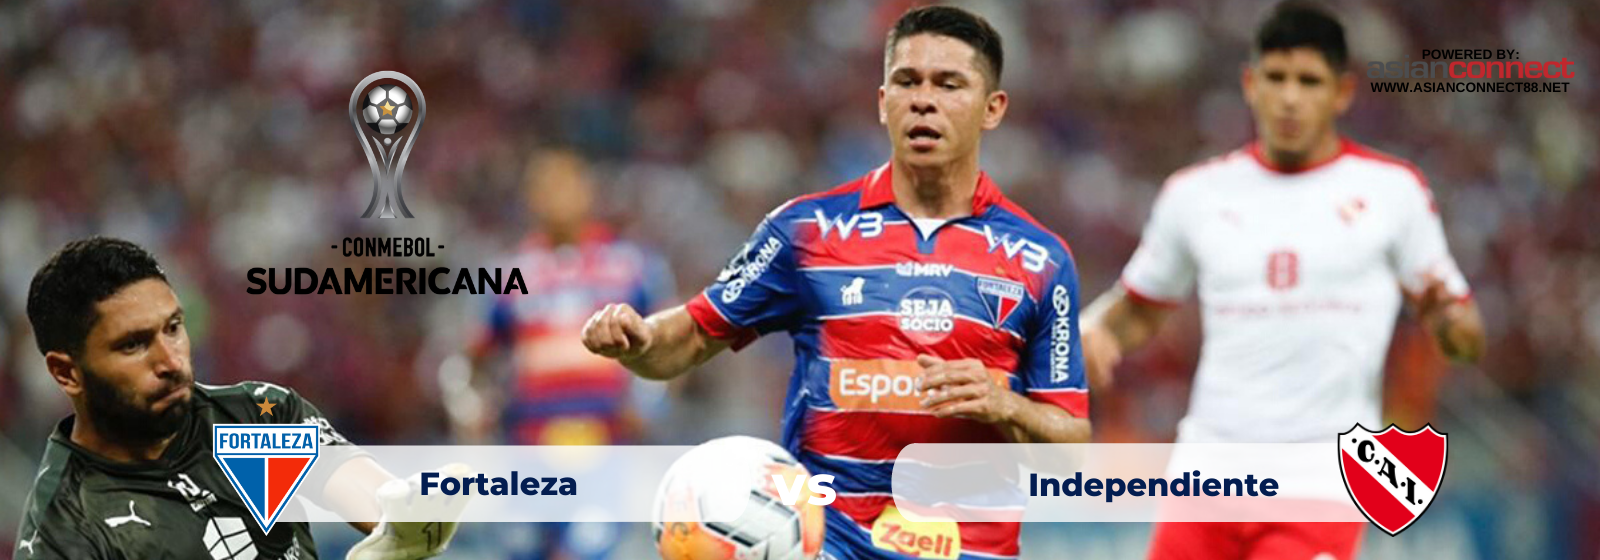 Asianodds: Fortaleza (Brazil) vs Independiente (Argentina) Odds for February 27, 2020